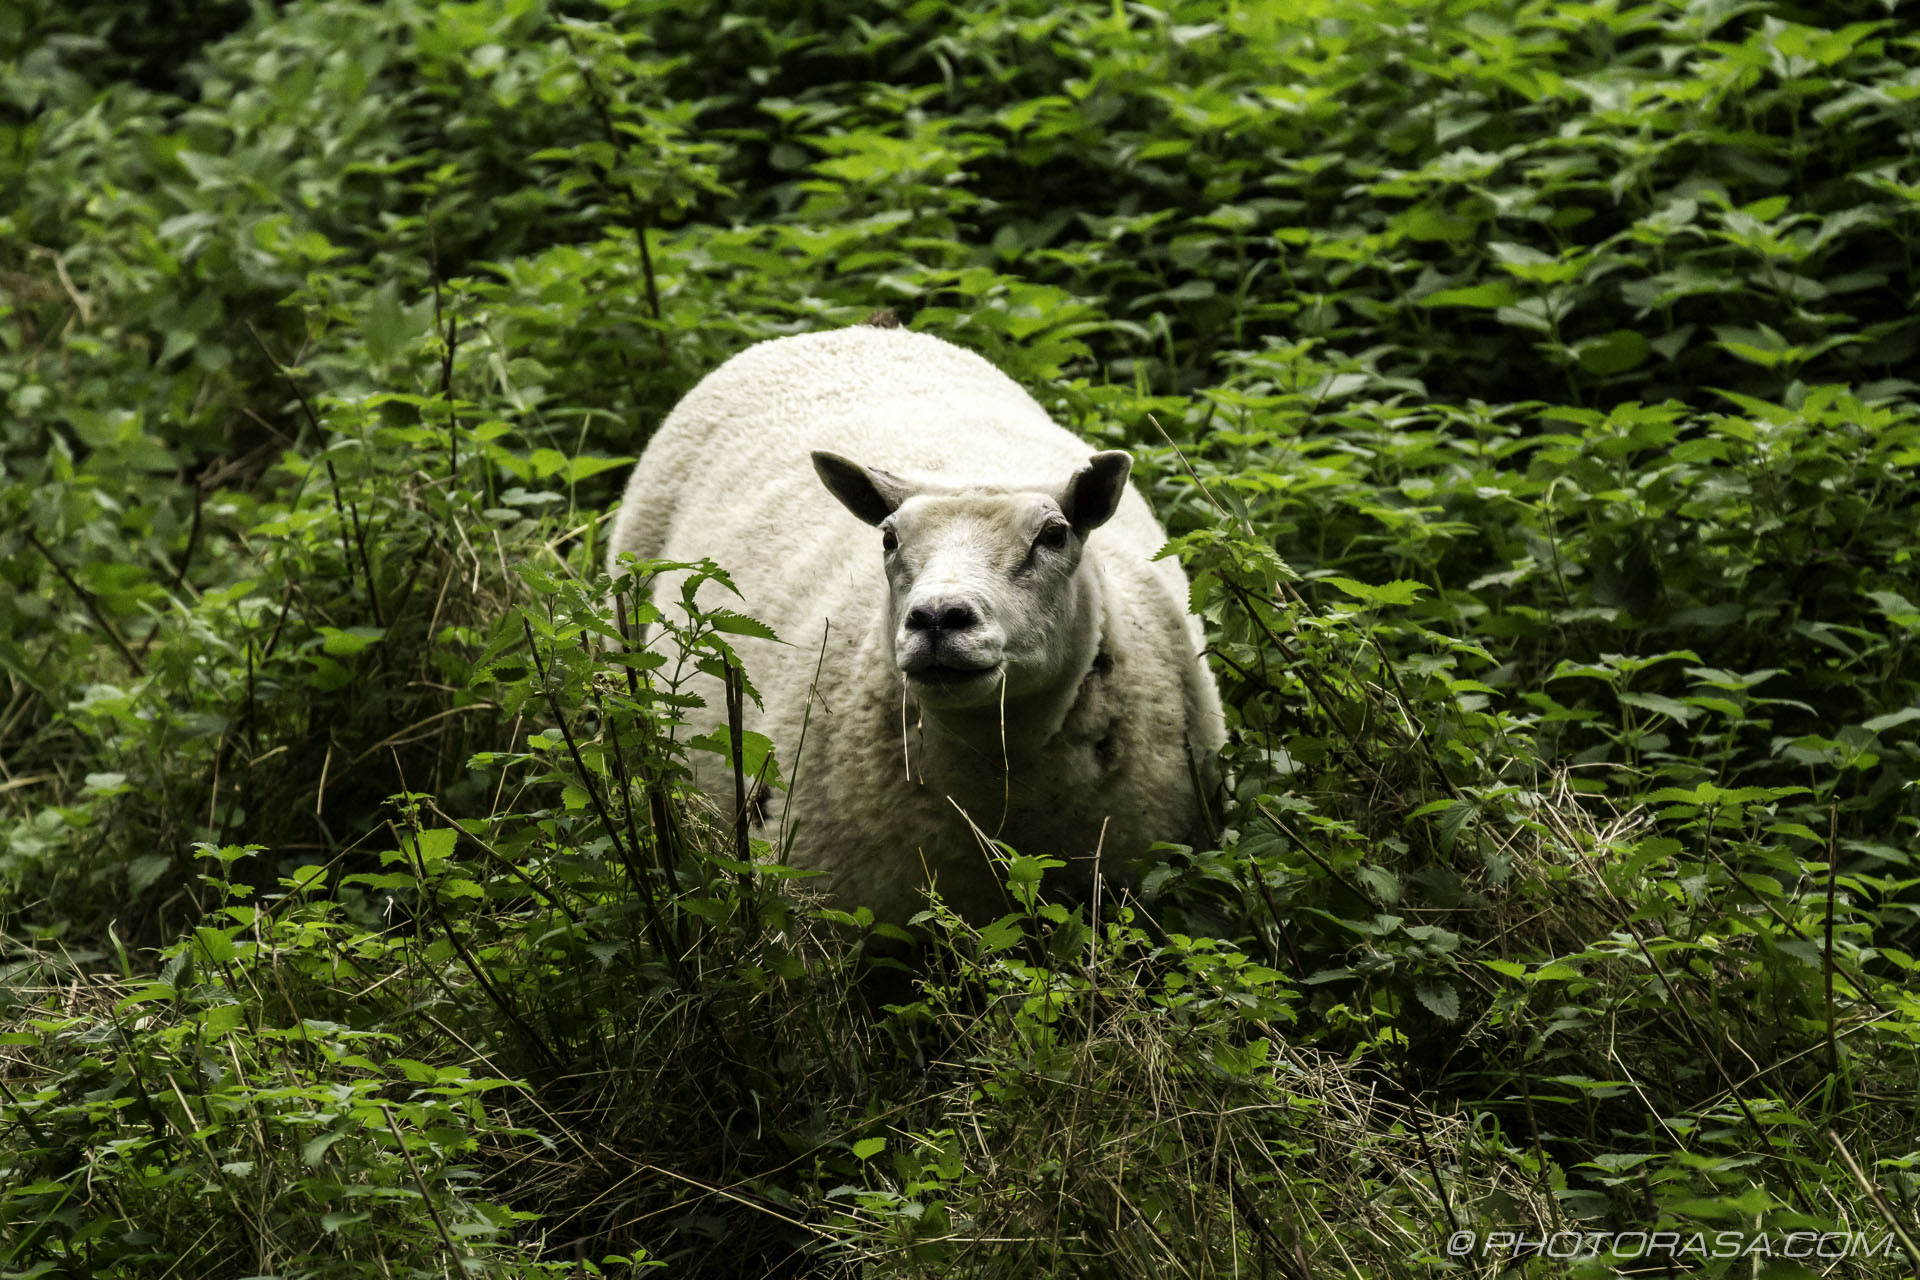 http://photorasa.com/sheep/texel-sheep-in-the-undergrowth/